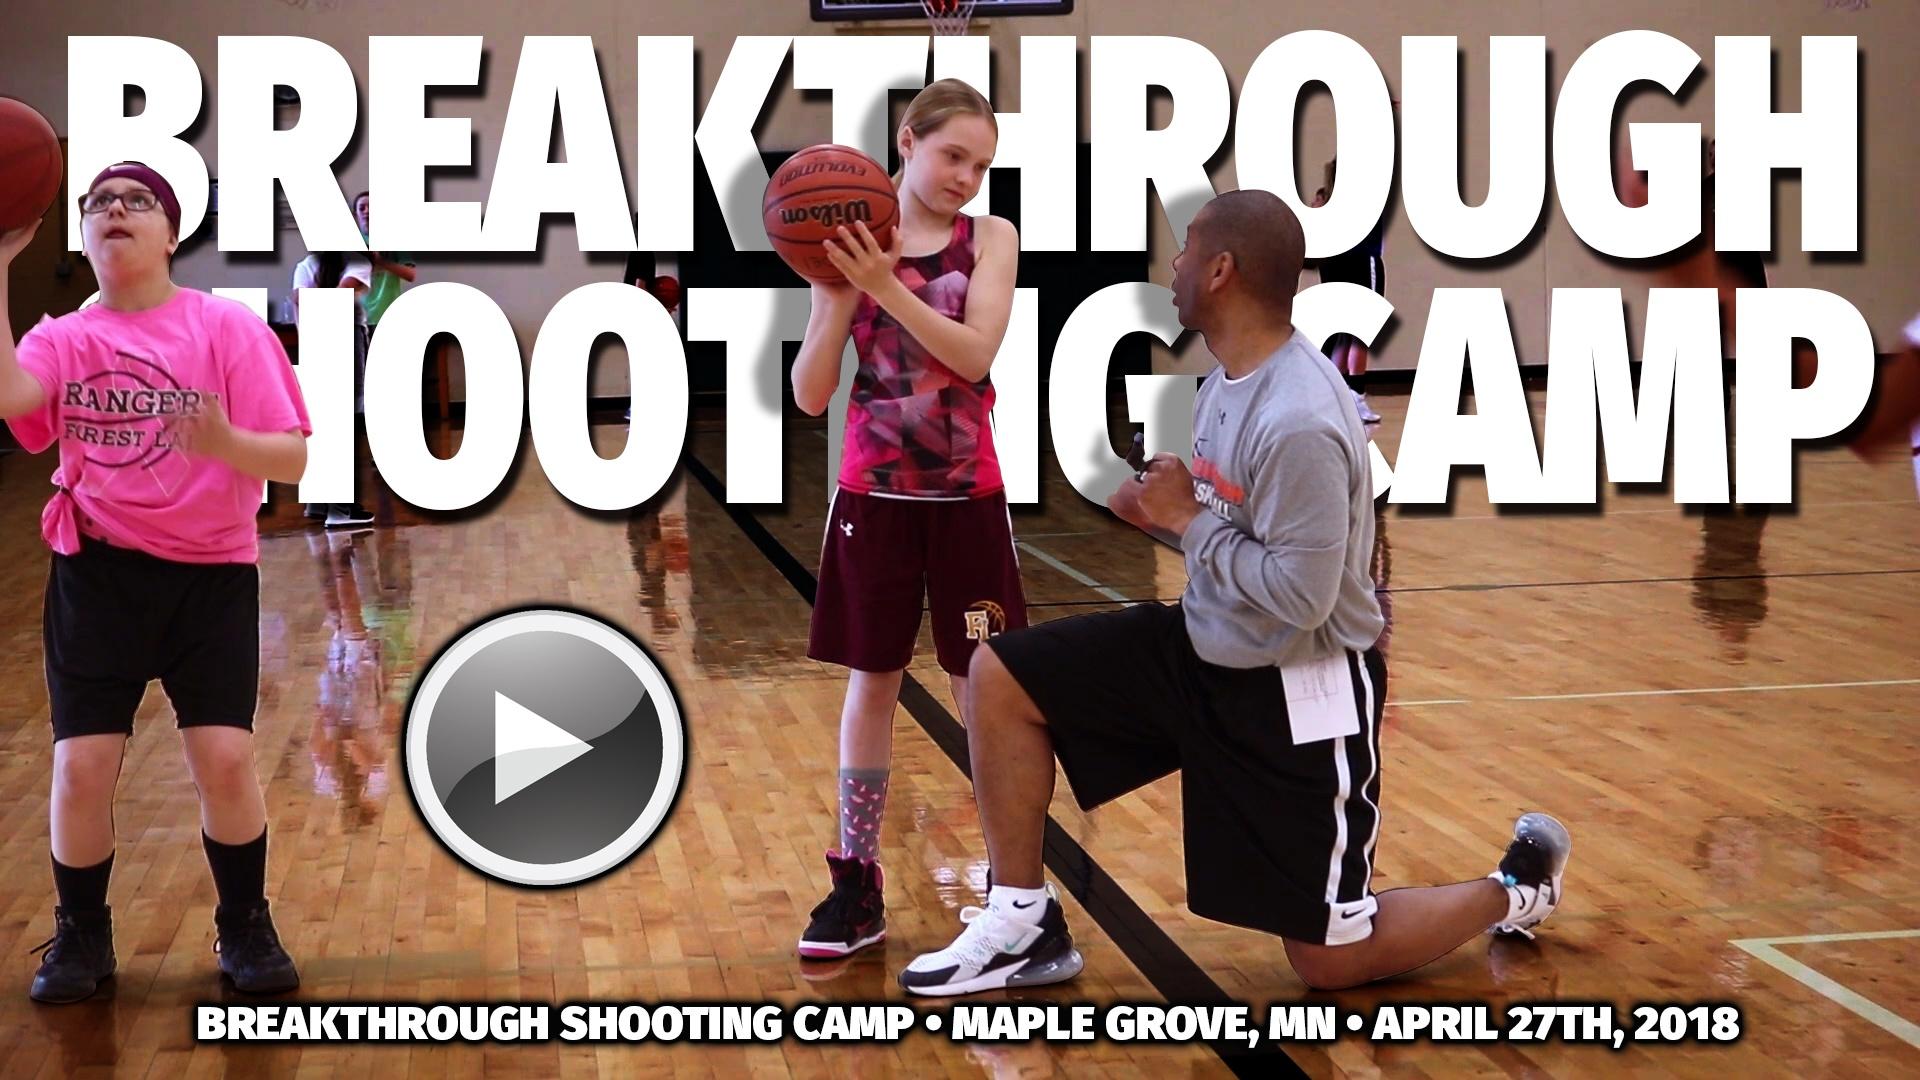 The Best Basketball Shooting Camp: Breakthrough Basketball & Dr. Dish